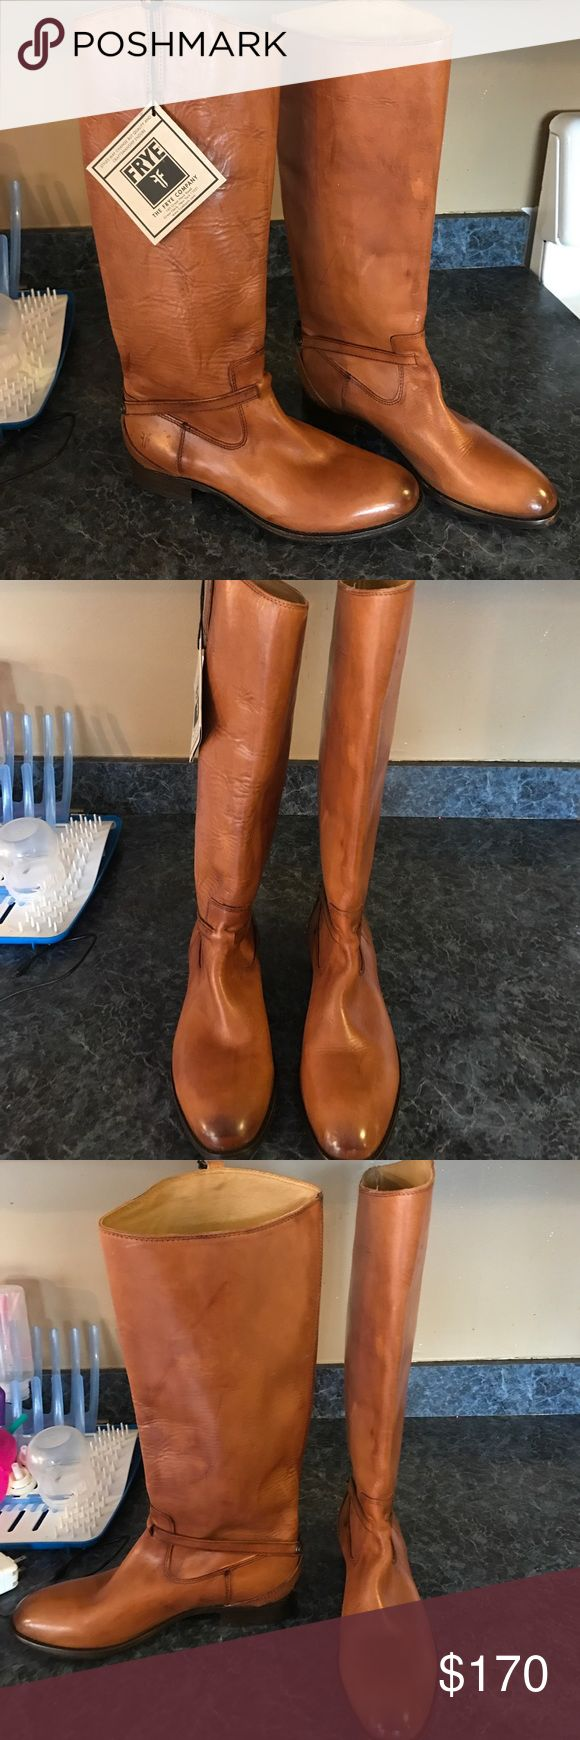 Frye Riding boots Brand new Frye riding boots. Never worn, still with tag. Size 8.5 Frye Shoes Heeled Boots